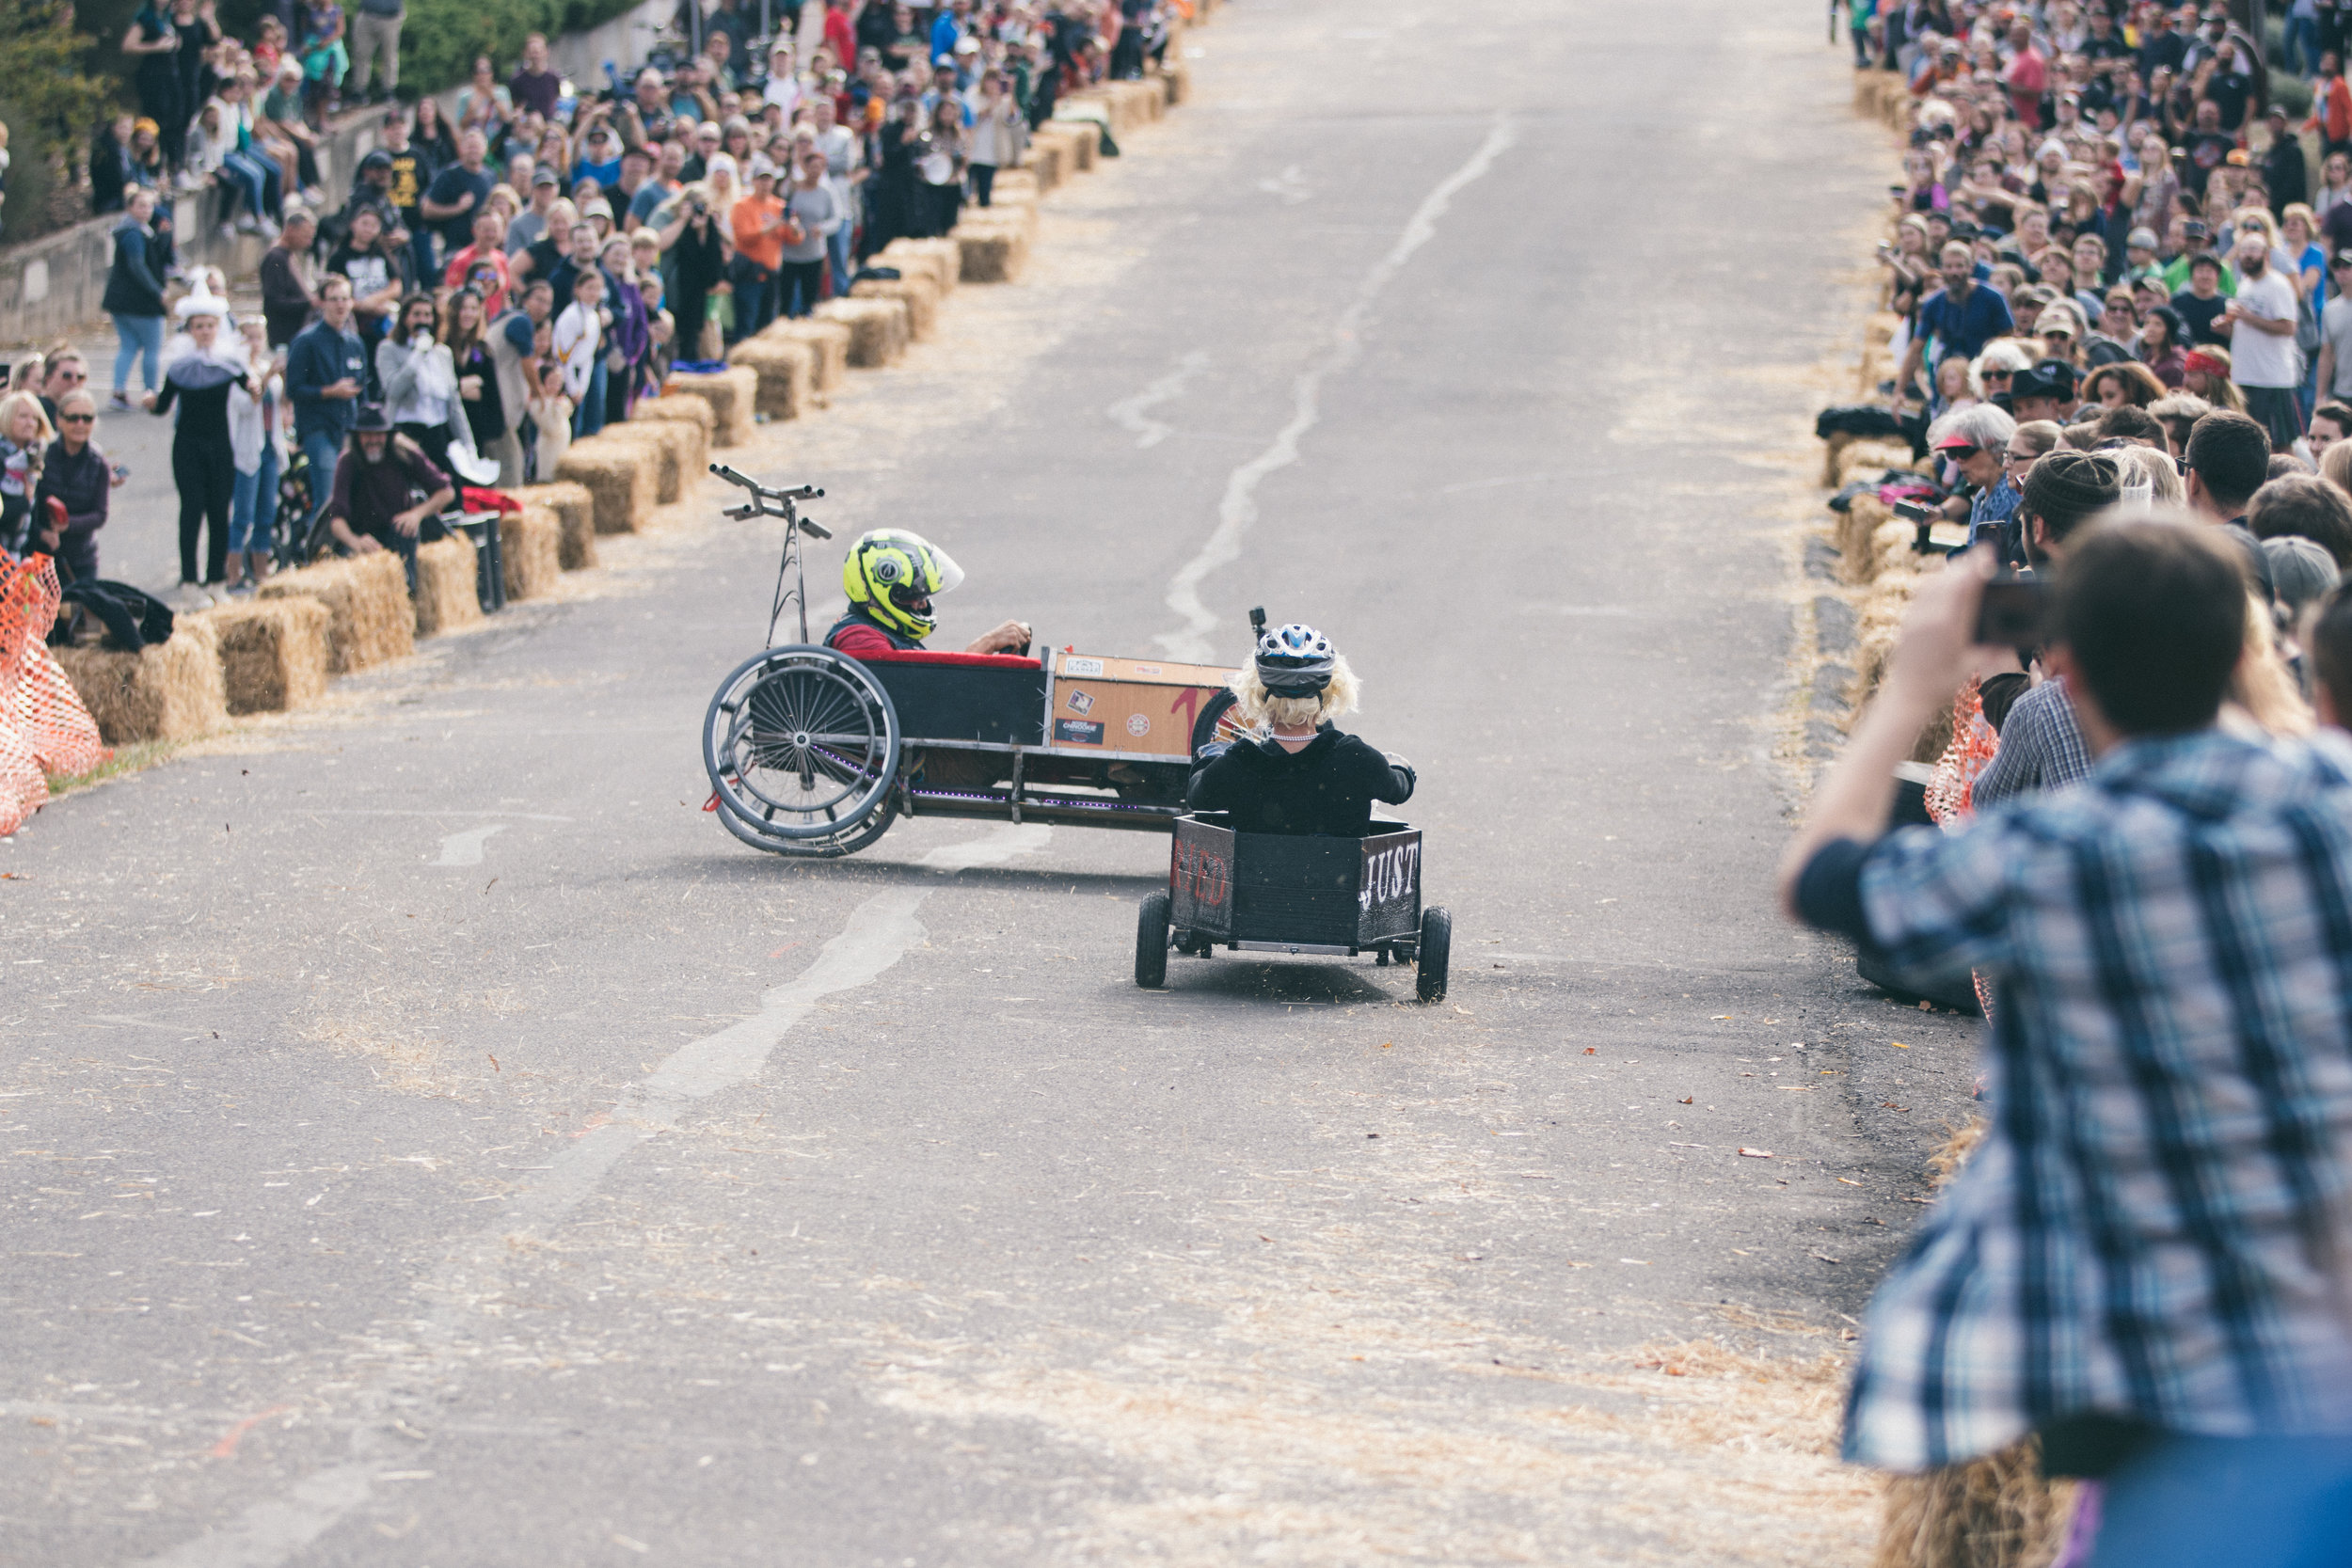 Coffin Races - 181027 - 3981.jpg